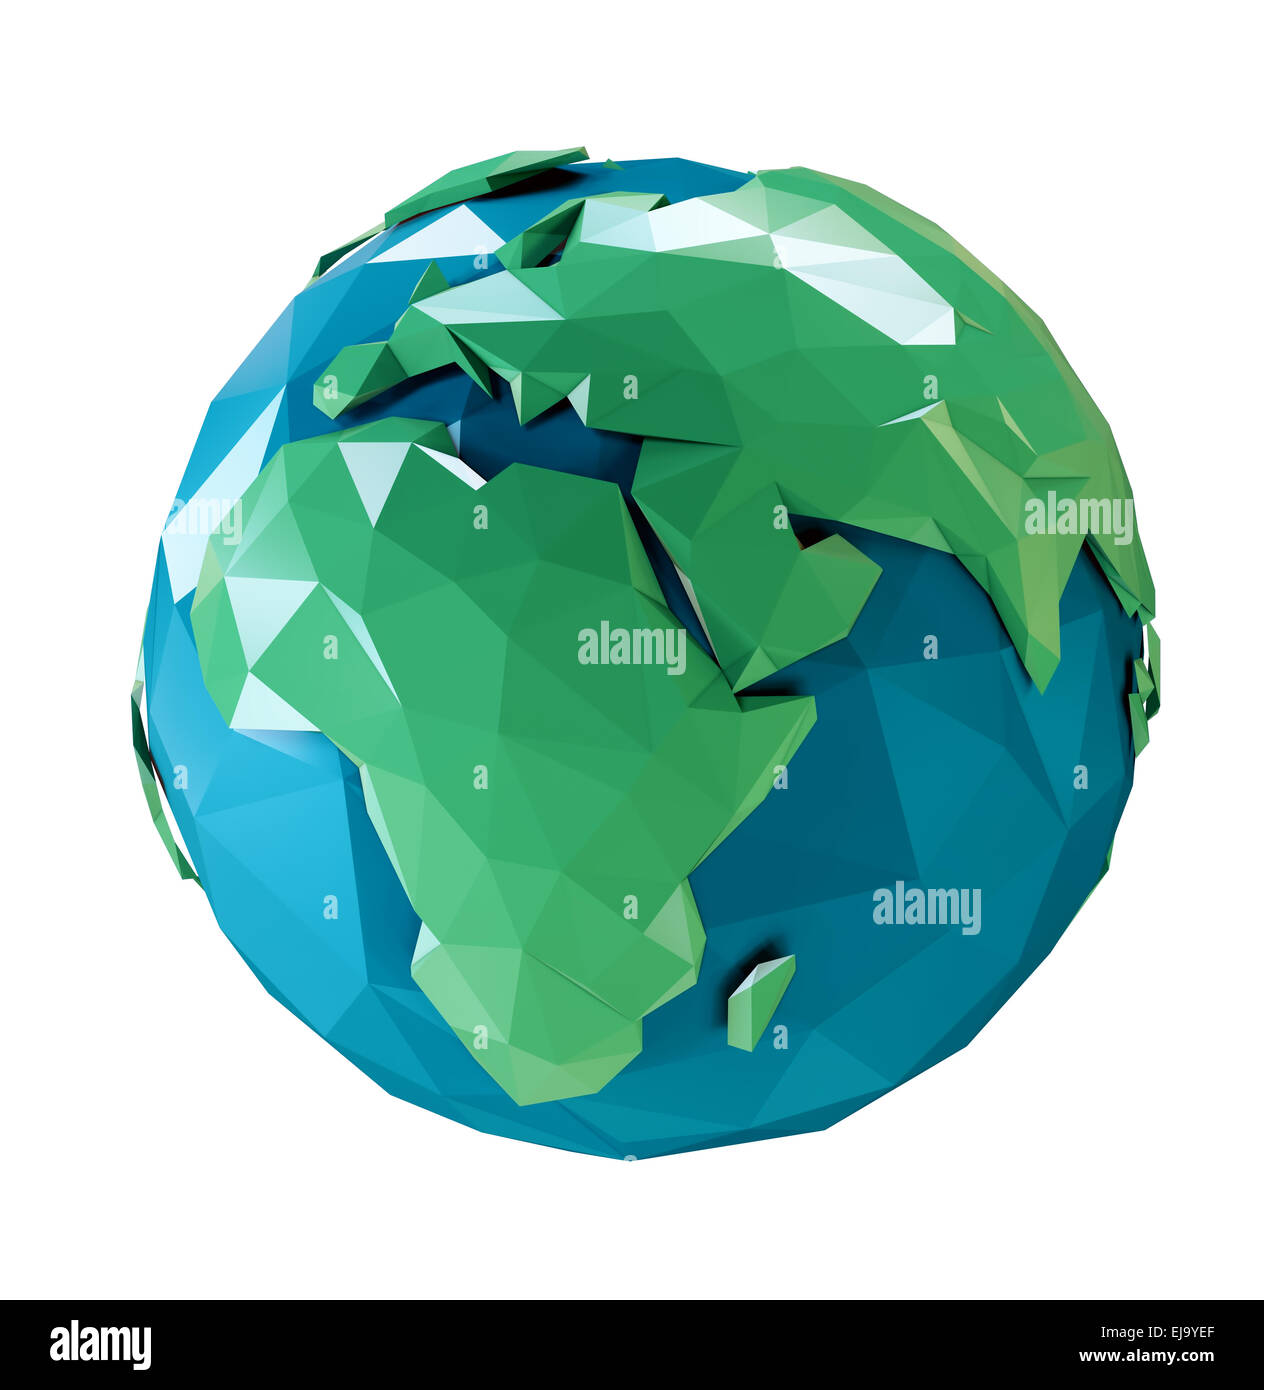 Stylized 3d abstract Earth model - Stock Image